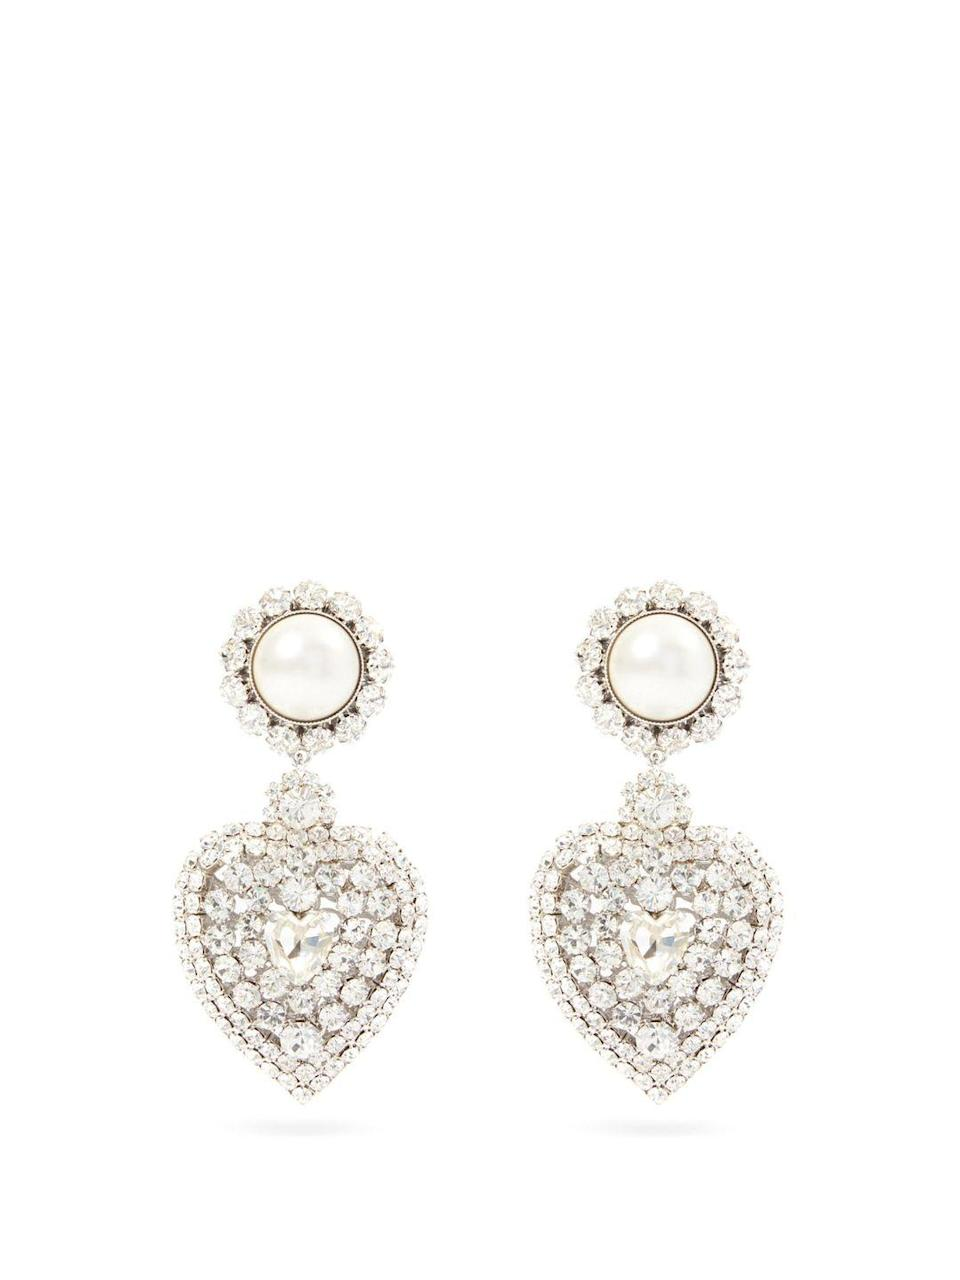 """<p>Alessandra Rich</p><p>Was £440.00</p><p>Now £264.00</p><p><a class=""""link rapid-noclick-resp"""" href=""""https://go.redirectingat.com?id=127X1599956&url=https%3A%2F%2Fwww.matchesfashion.com%2Fproducts%2FAlessandra-Rich-Faux-pearl-%2526-crystal-heart-clip-earrings-1409314&sref=https%3A%2F%2Fwww.elle.com%2Fuk%2Ffashion%2Fwhat-to-wear%2Fg36616066%2Fmatches-fashion-sale%2F"""" rel=""""nofollow noopener"""" target=""""_blank"""" data-ylk=""""slk:SHOP NOW"""">SHOP NOW</a></p><p>Clip-ons are great for those who don't want stretched earlobes. </p>"""